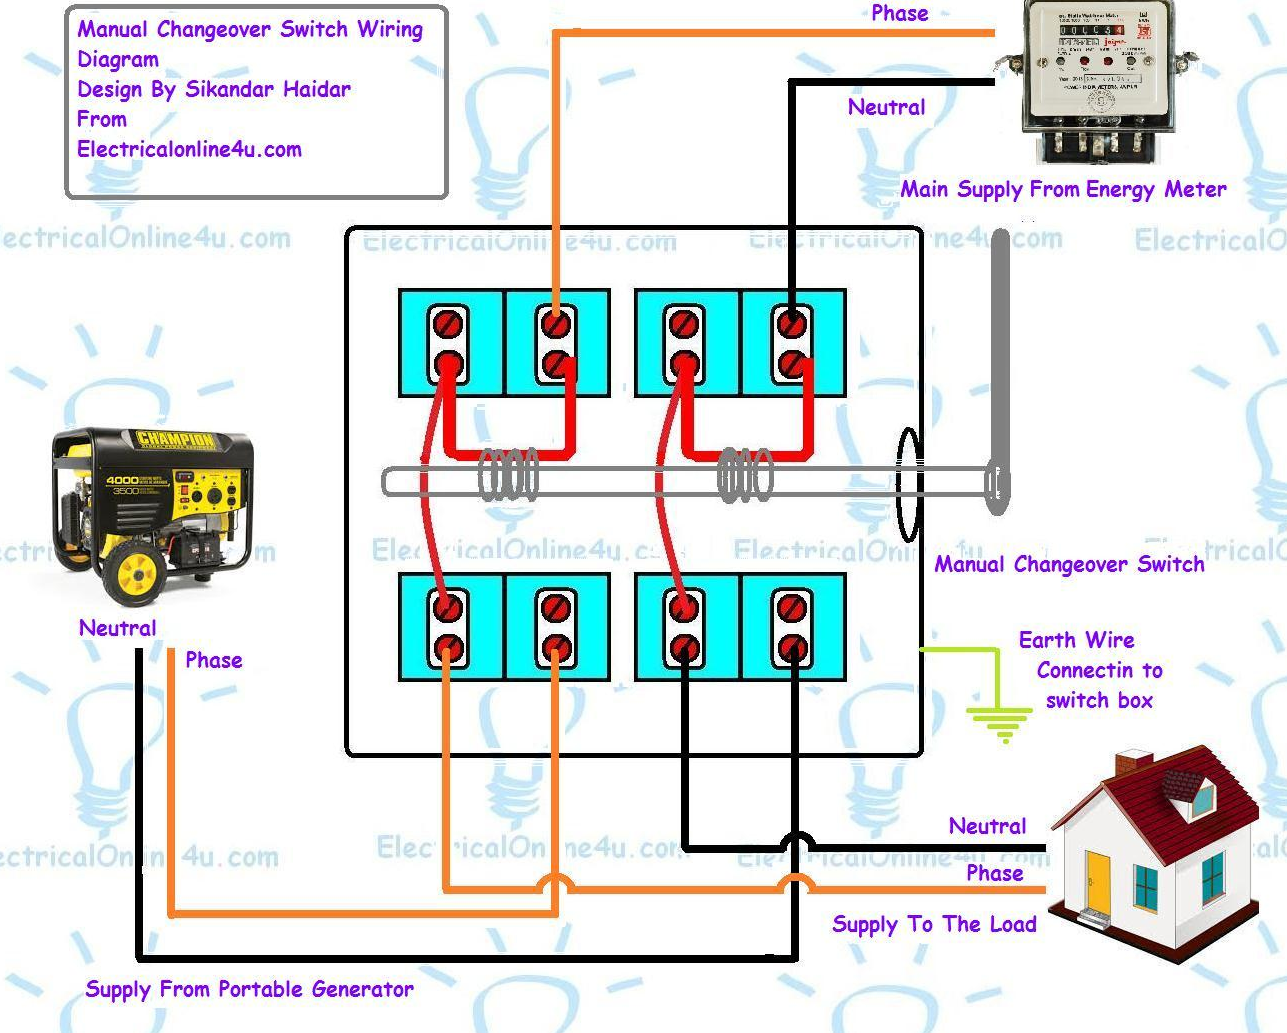 manual%2Bchangeover%2Bswitch%2Bwiring%2Bdiagram single phase motor wiring with contactor diagram electrical electrical contactor wiring diagram at aneh.co